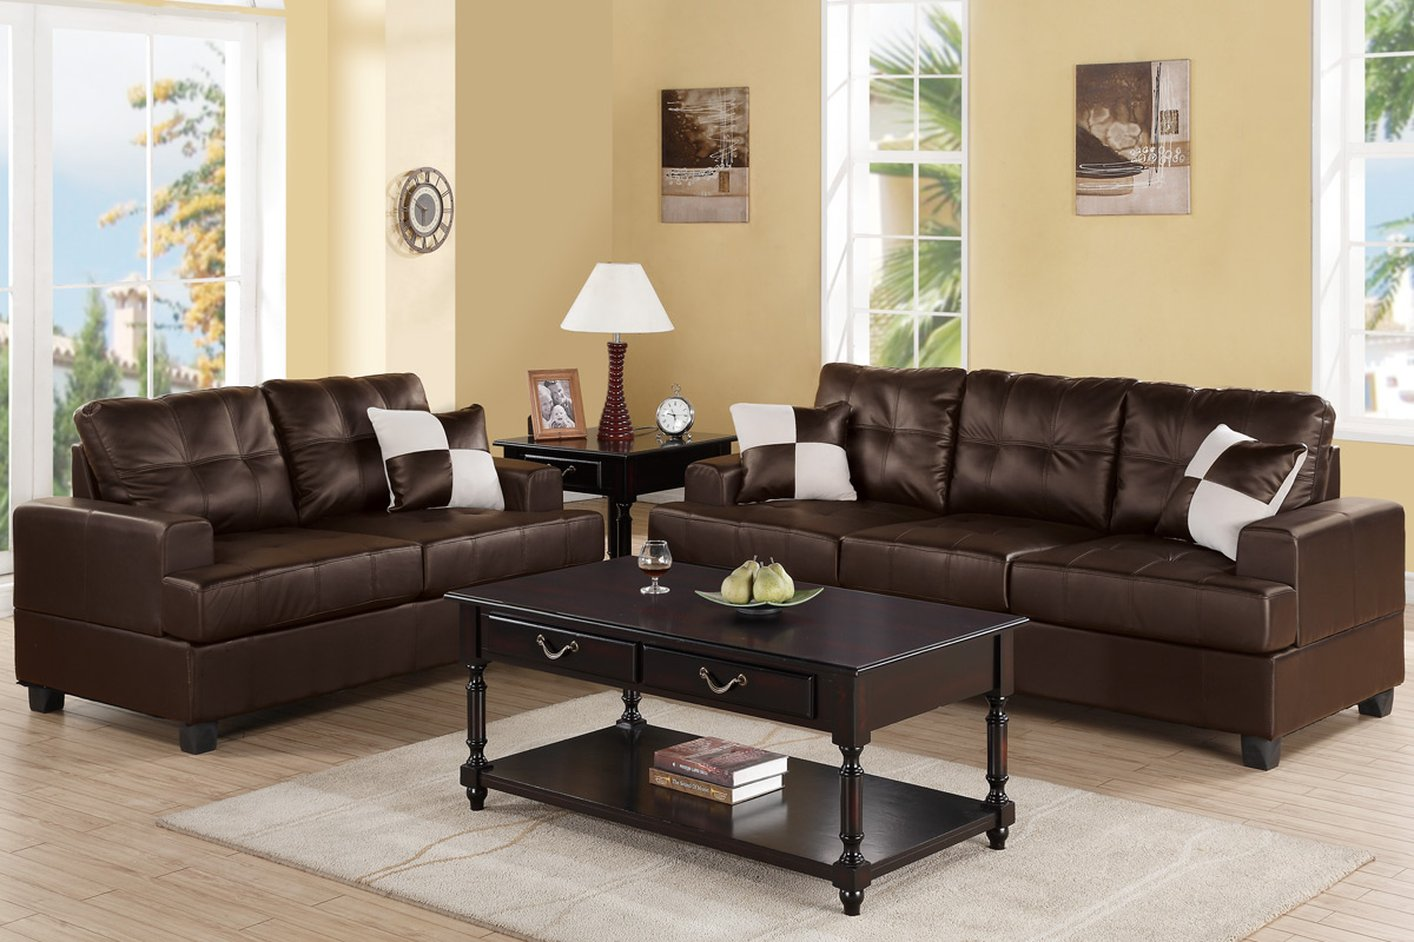 Poundex kyler f7577 brown leather sofa and loveseat set for Leather sofa and loveseat set